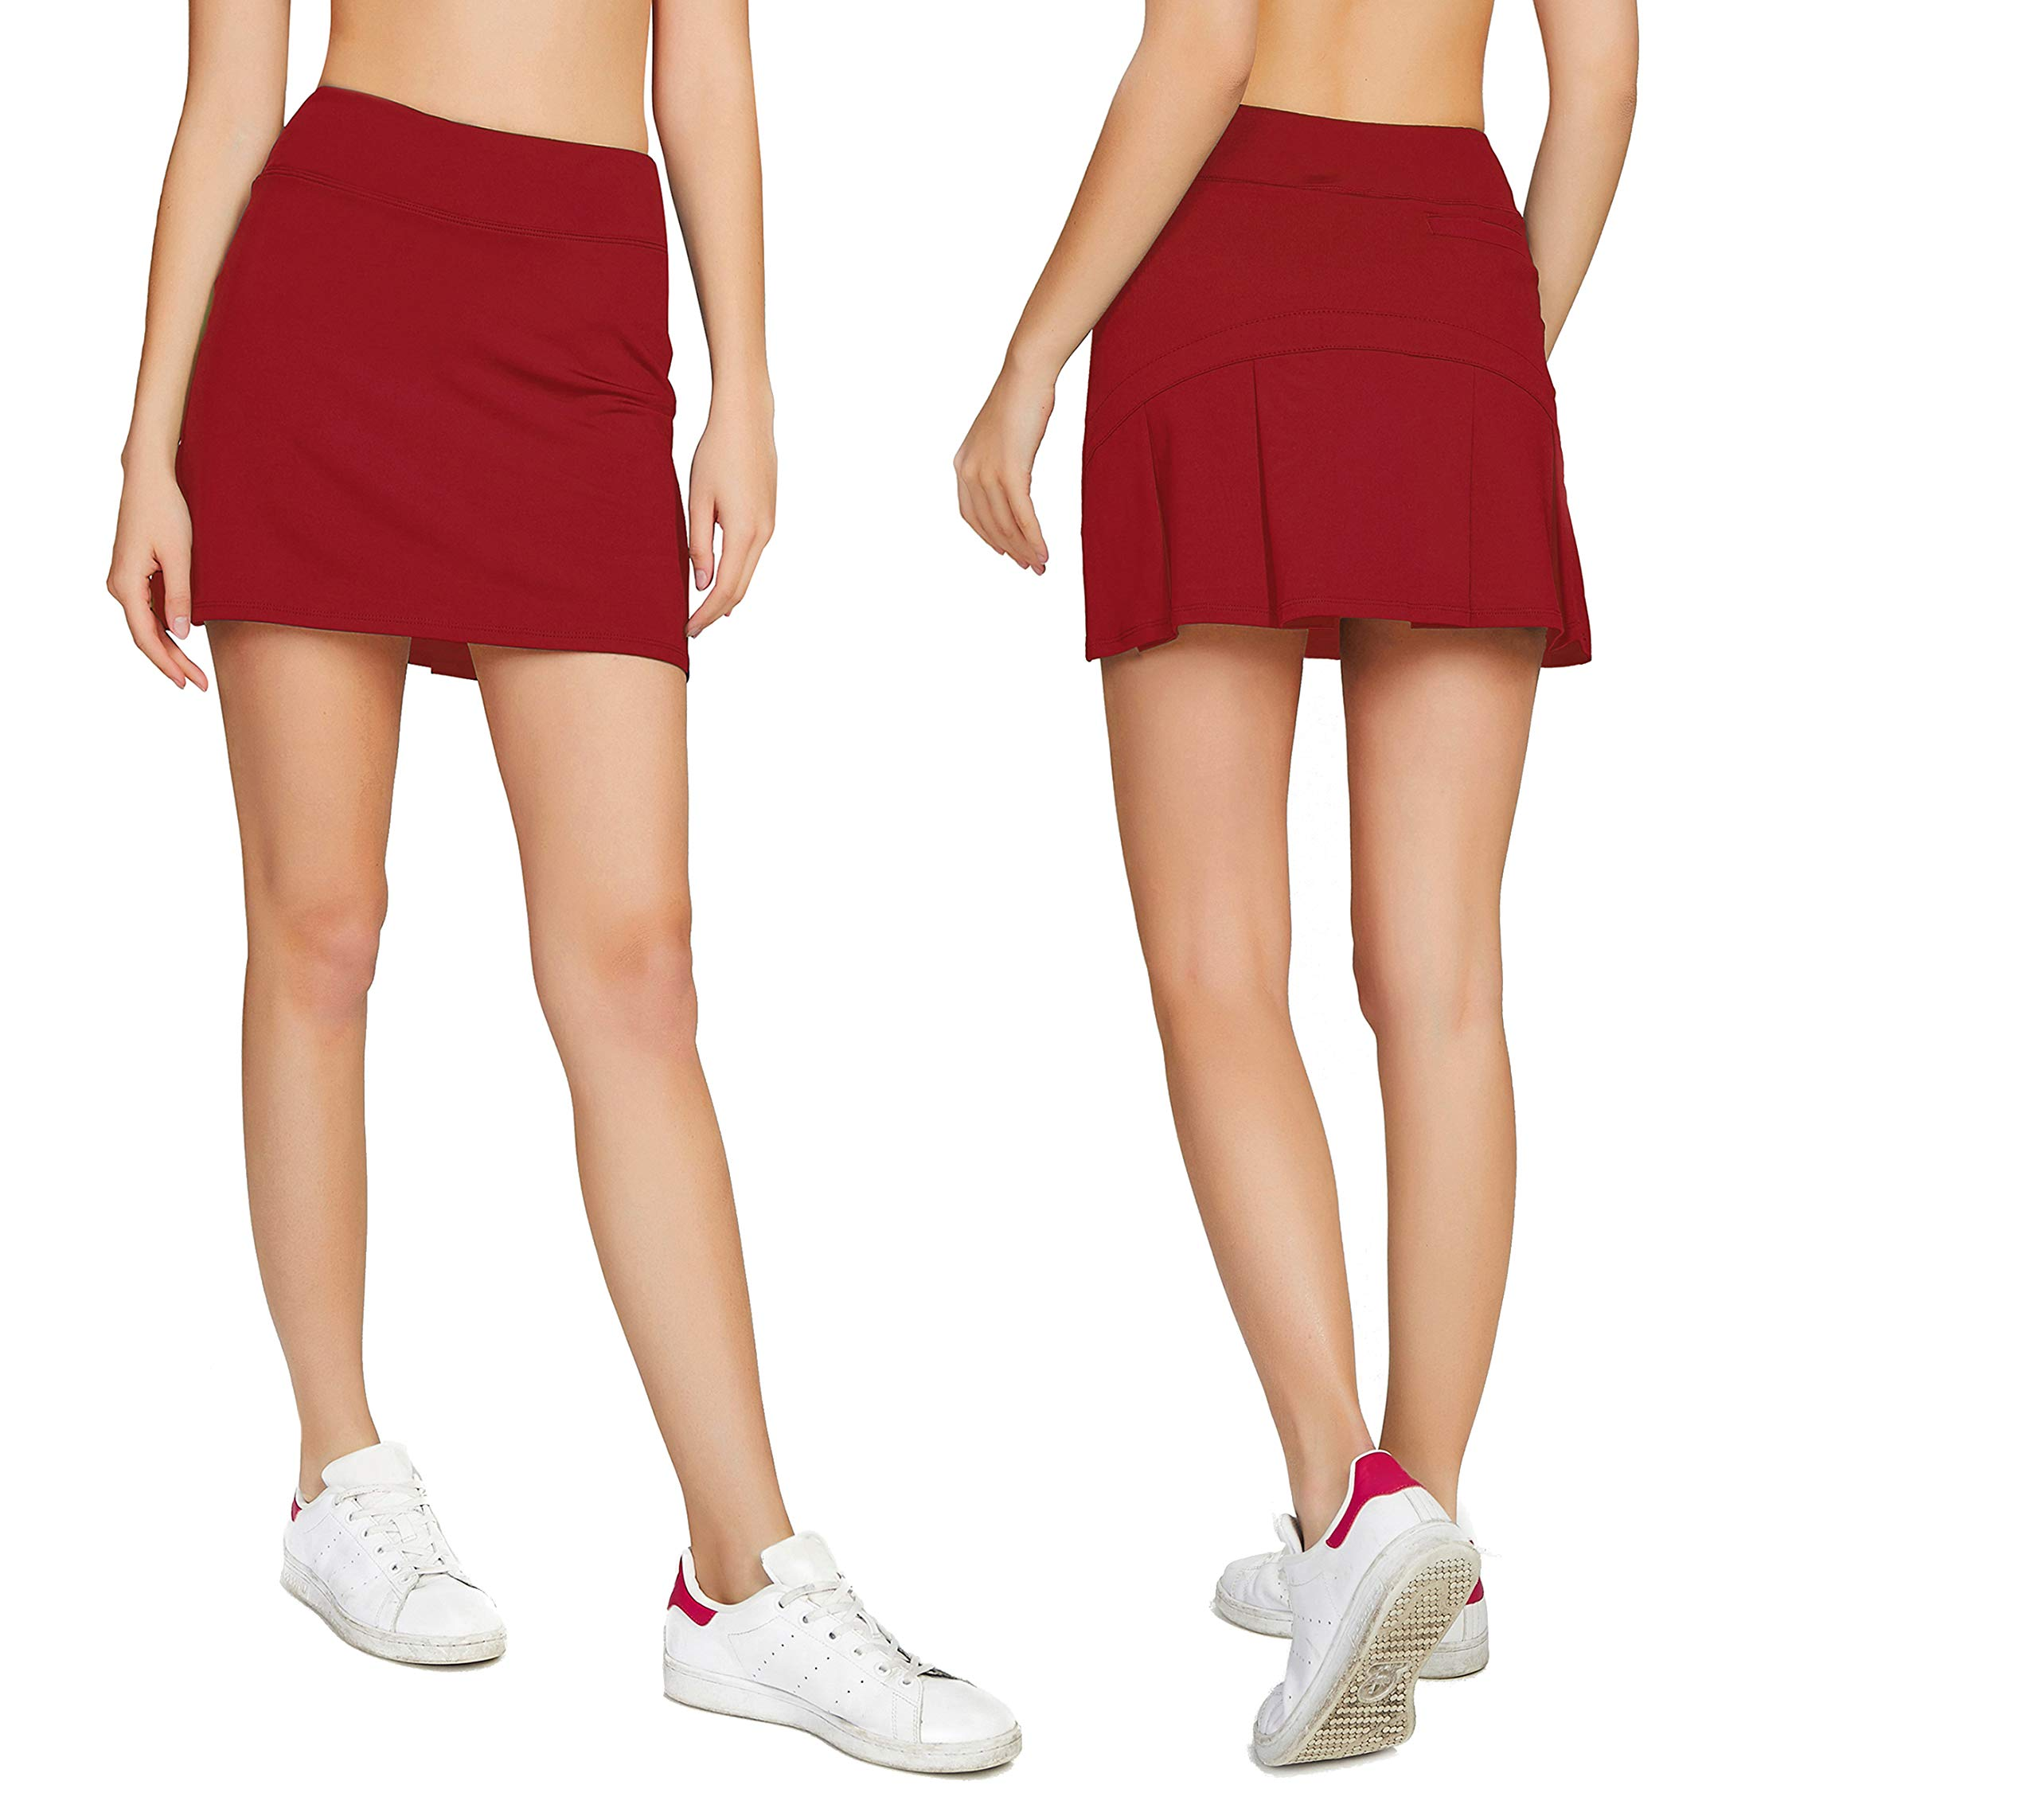 Cityoung Women's Casual Pleated Golf Skirt with Underneath Shorts Running Skorts m red